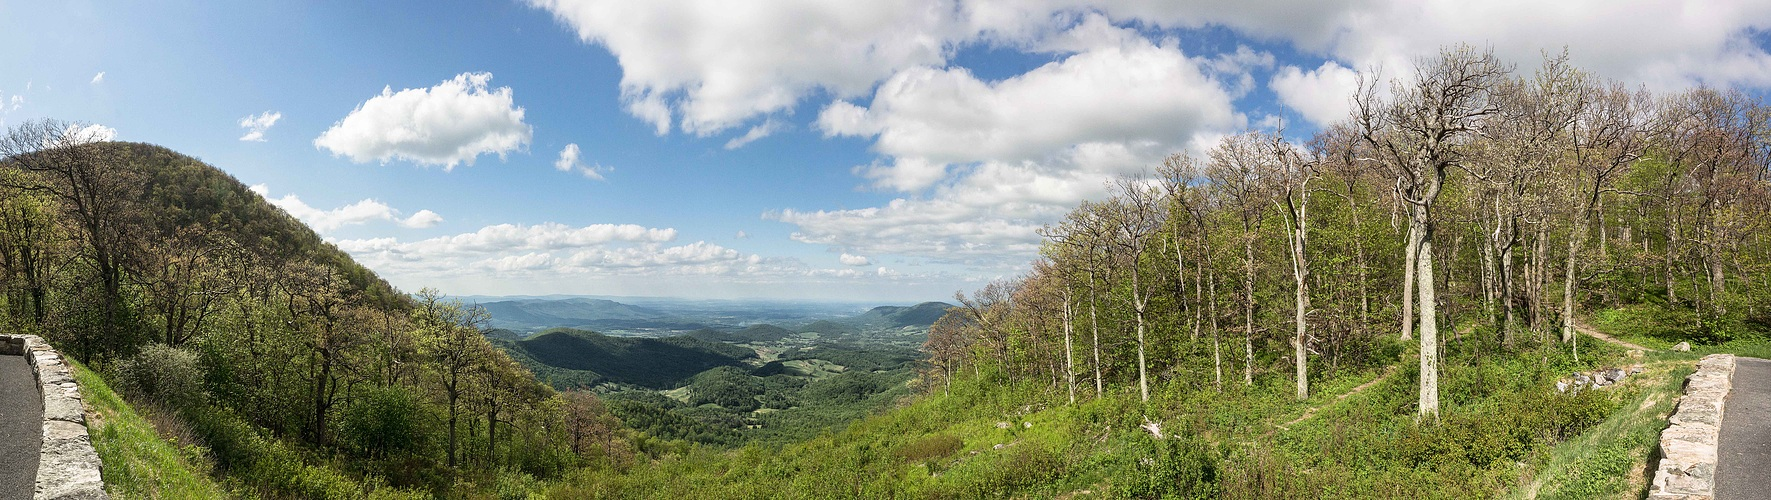 ~Shenandoah Nationalpark~